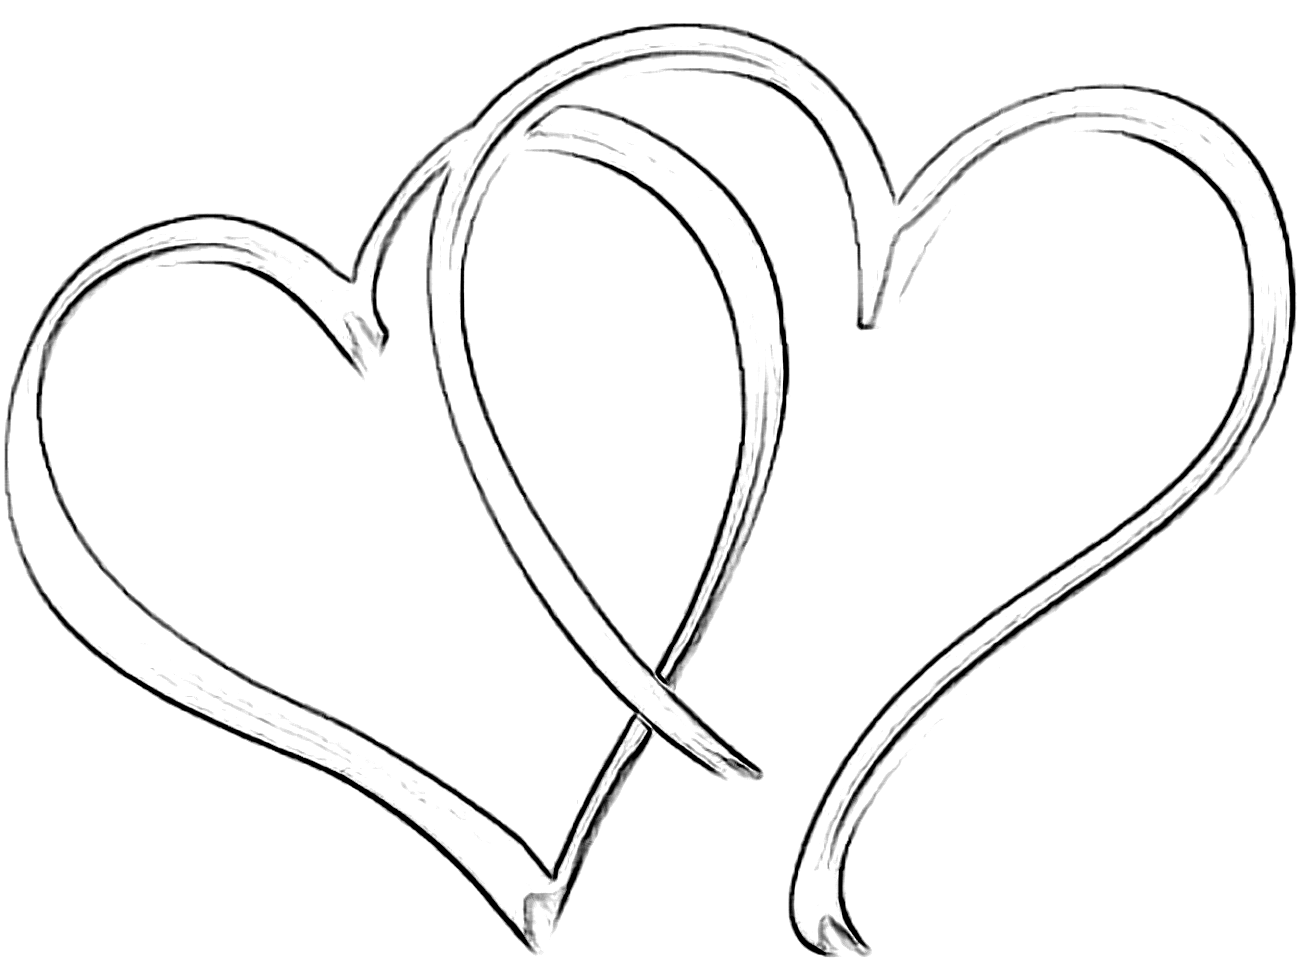 Love Heart Drawing At Getdrawings Free For Personal Use Love